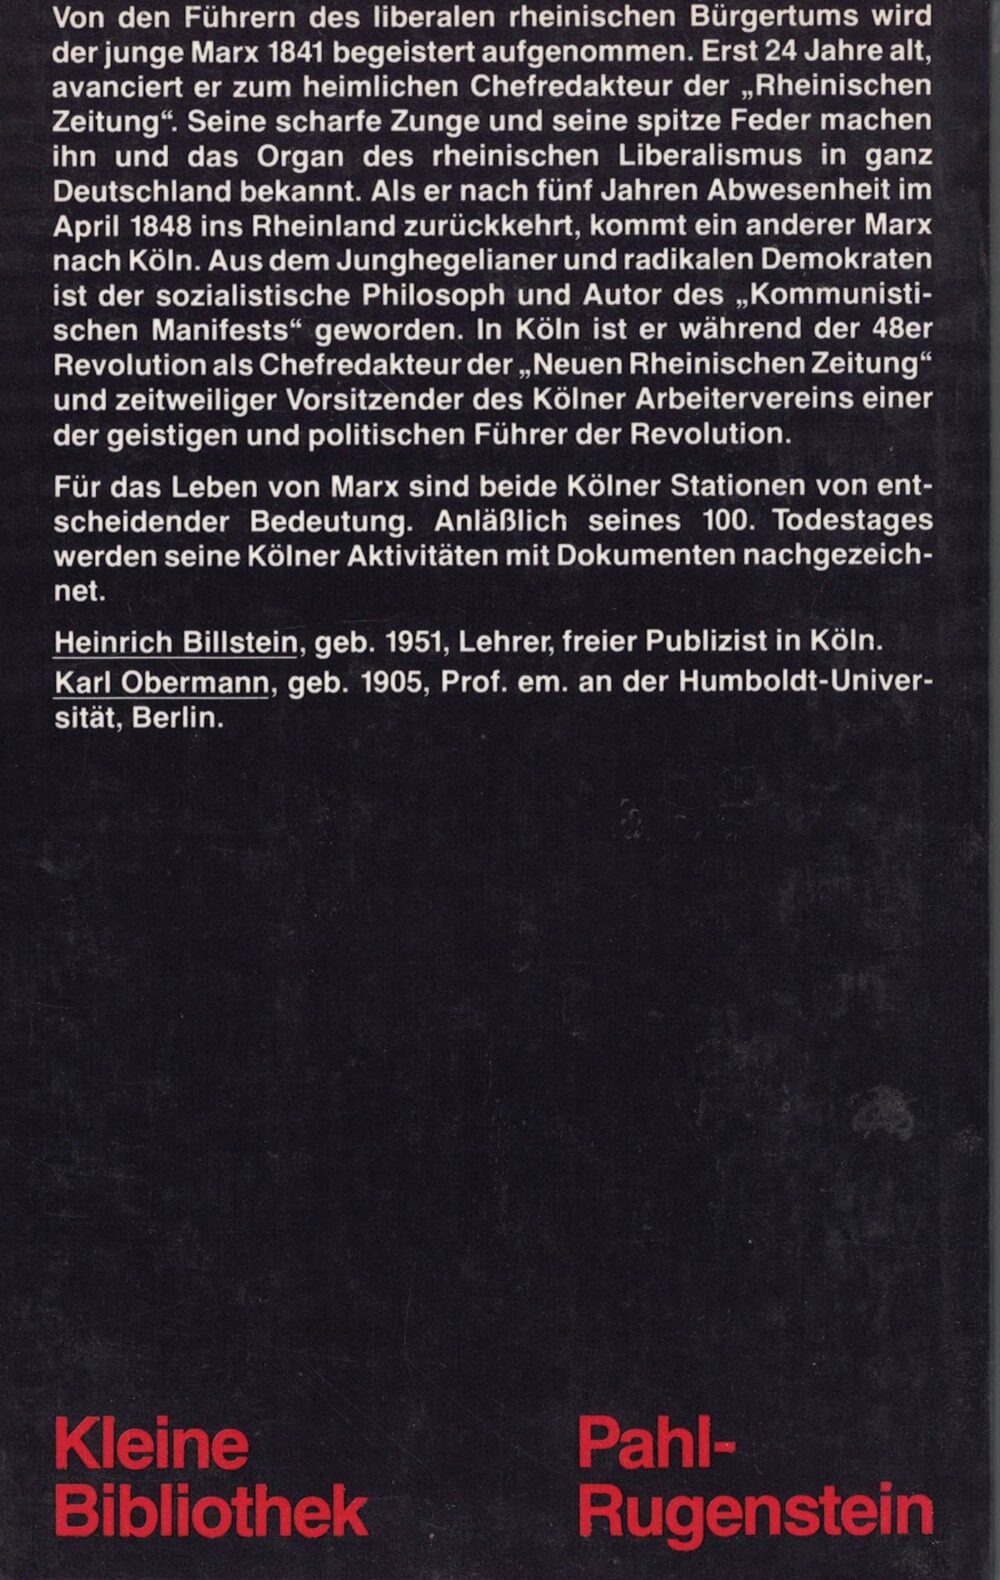 Heinrich Billstein, Karl Obermann - Marx in Köln